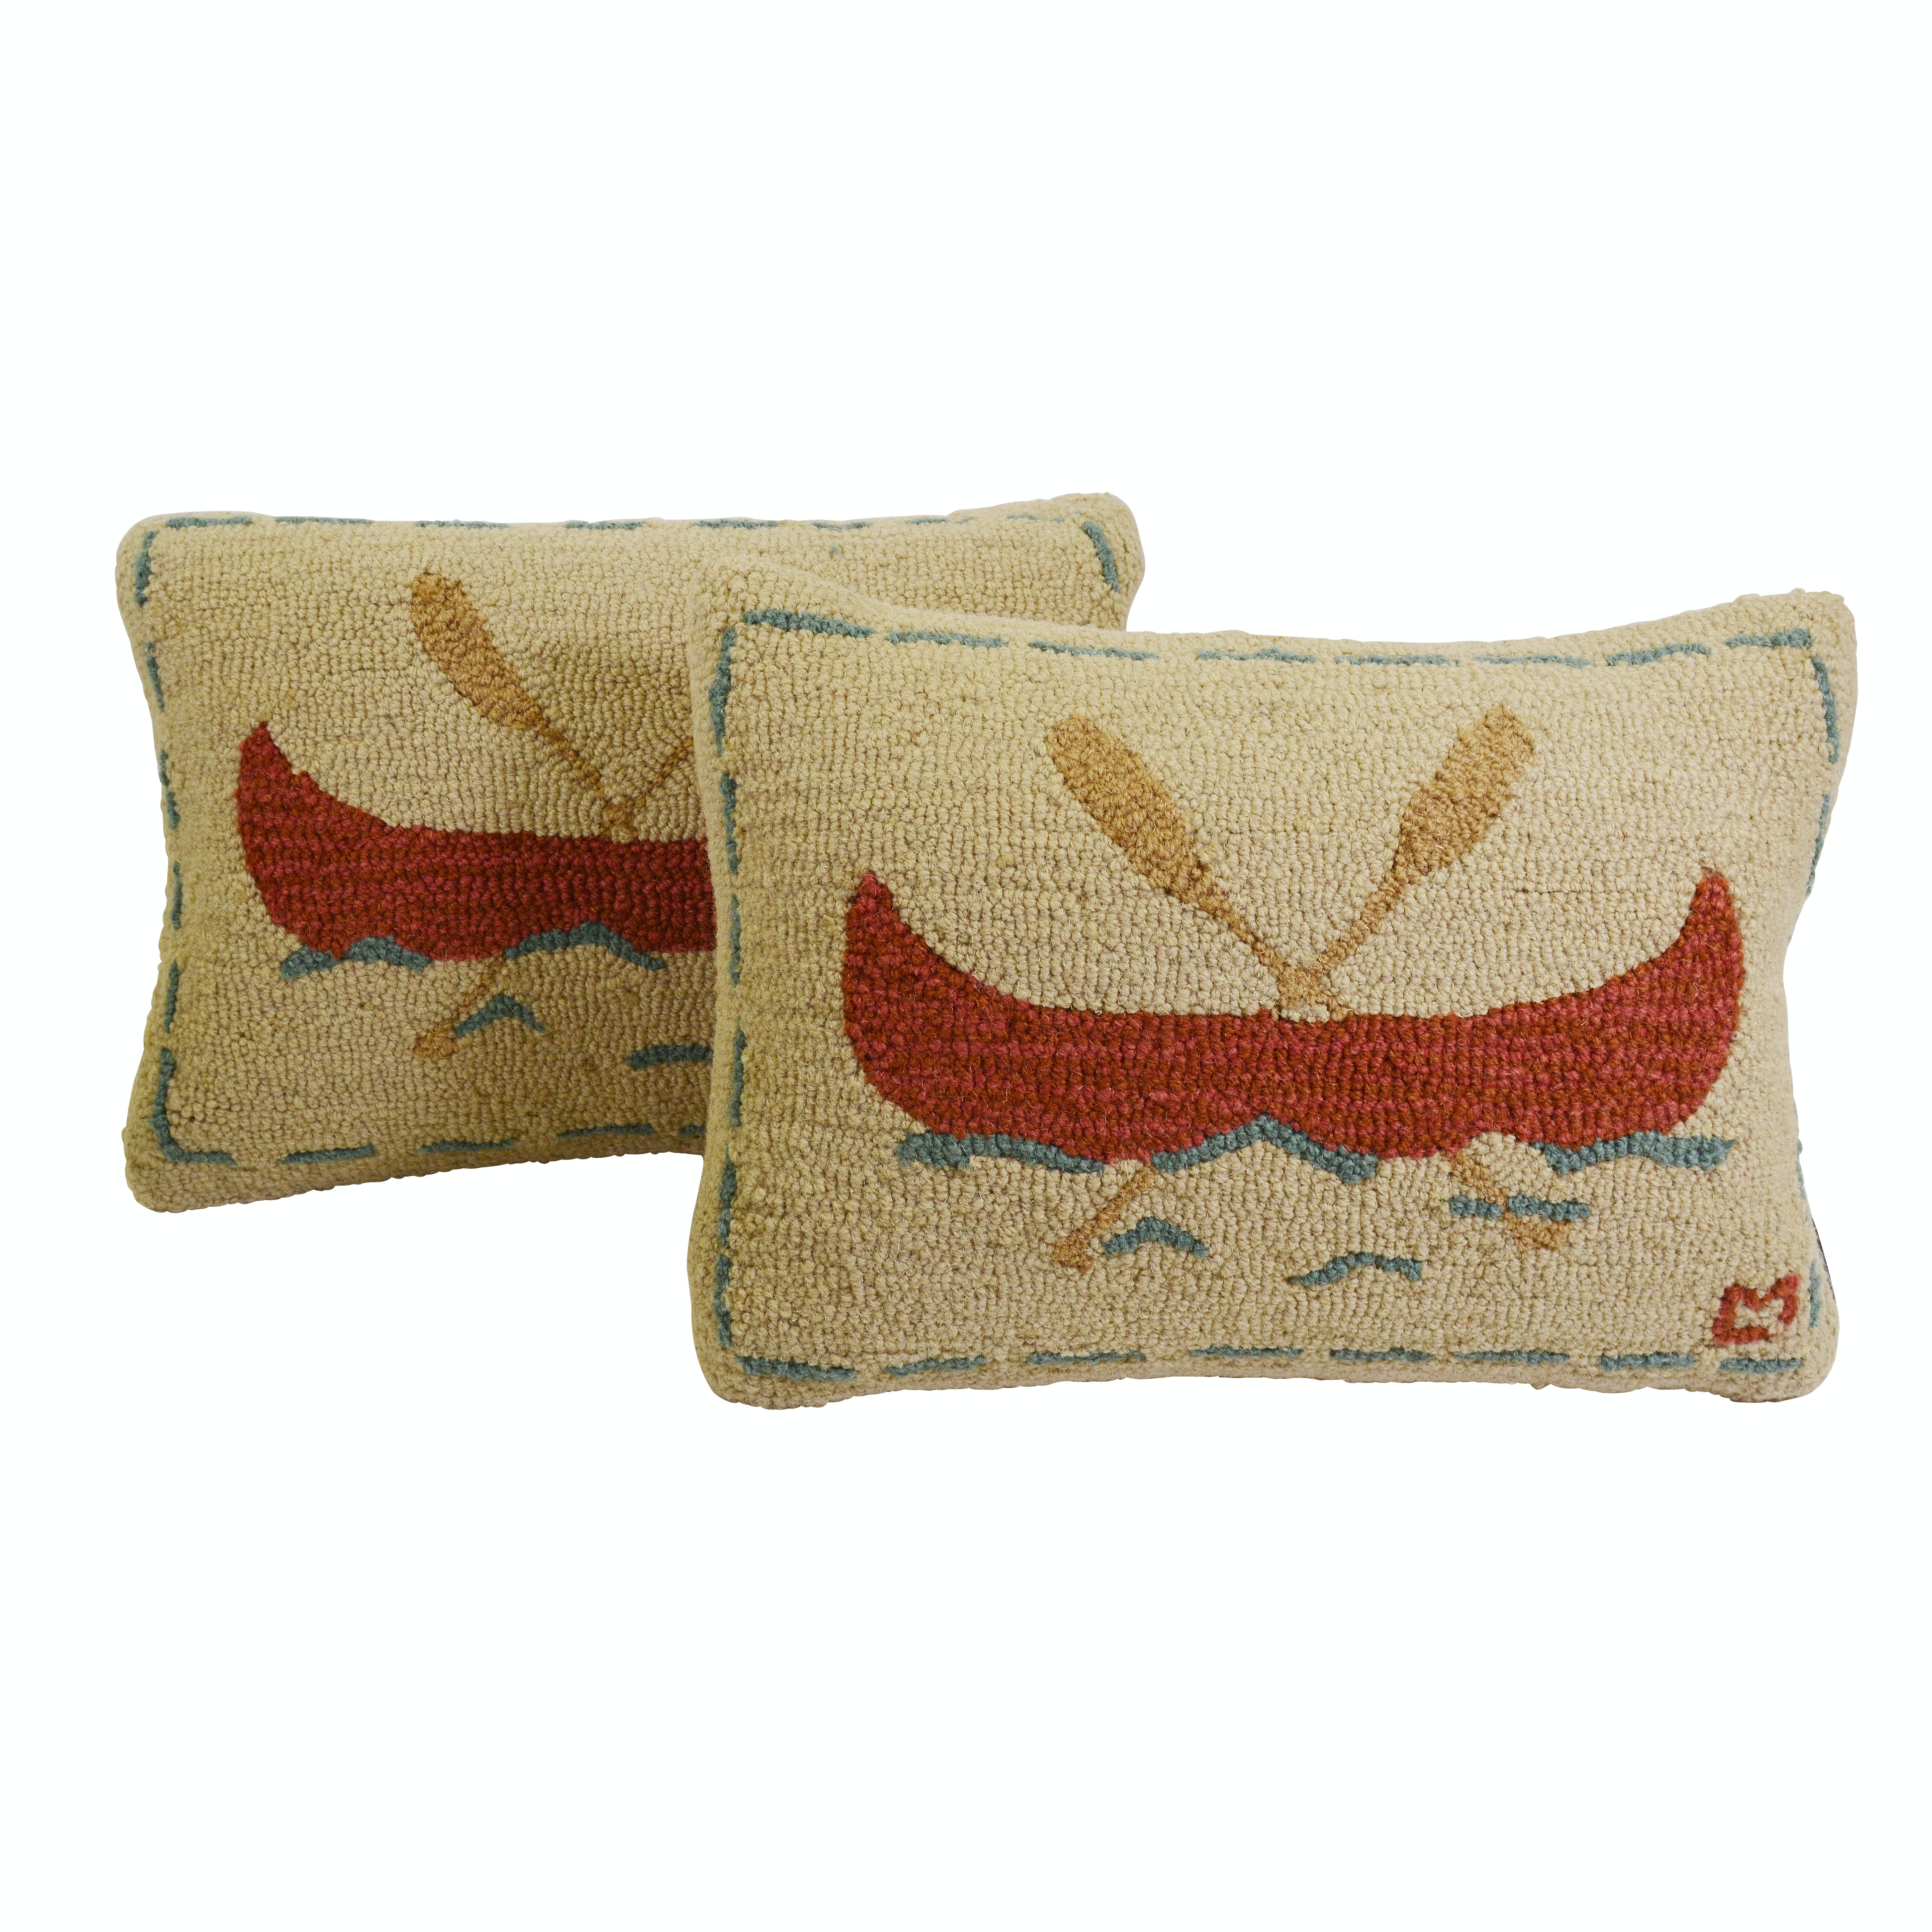 "Laura Megroz for Chandler Four Corners ""Canoe"" Hooked Wool Pillows"